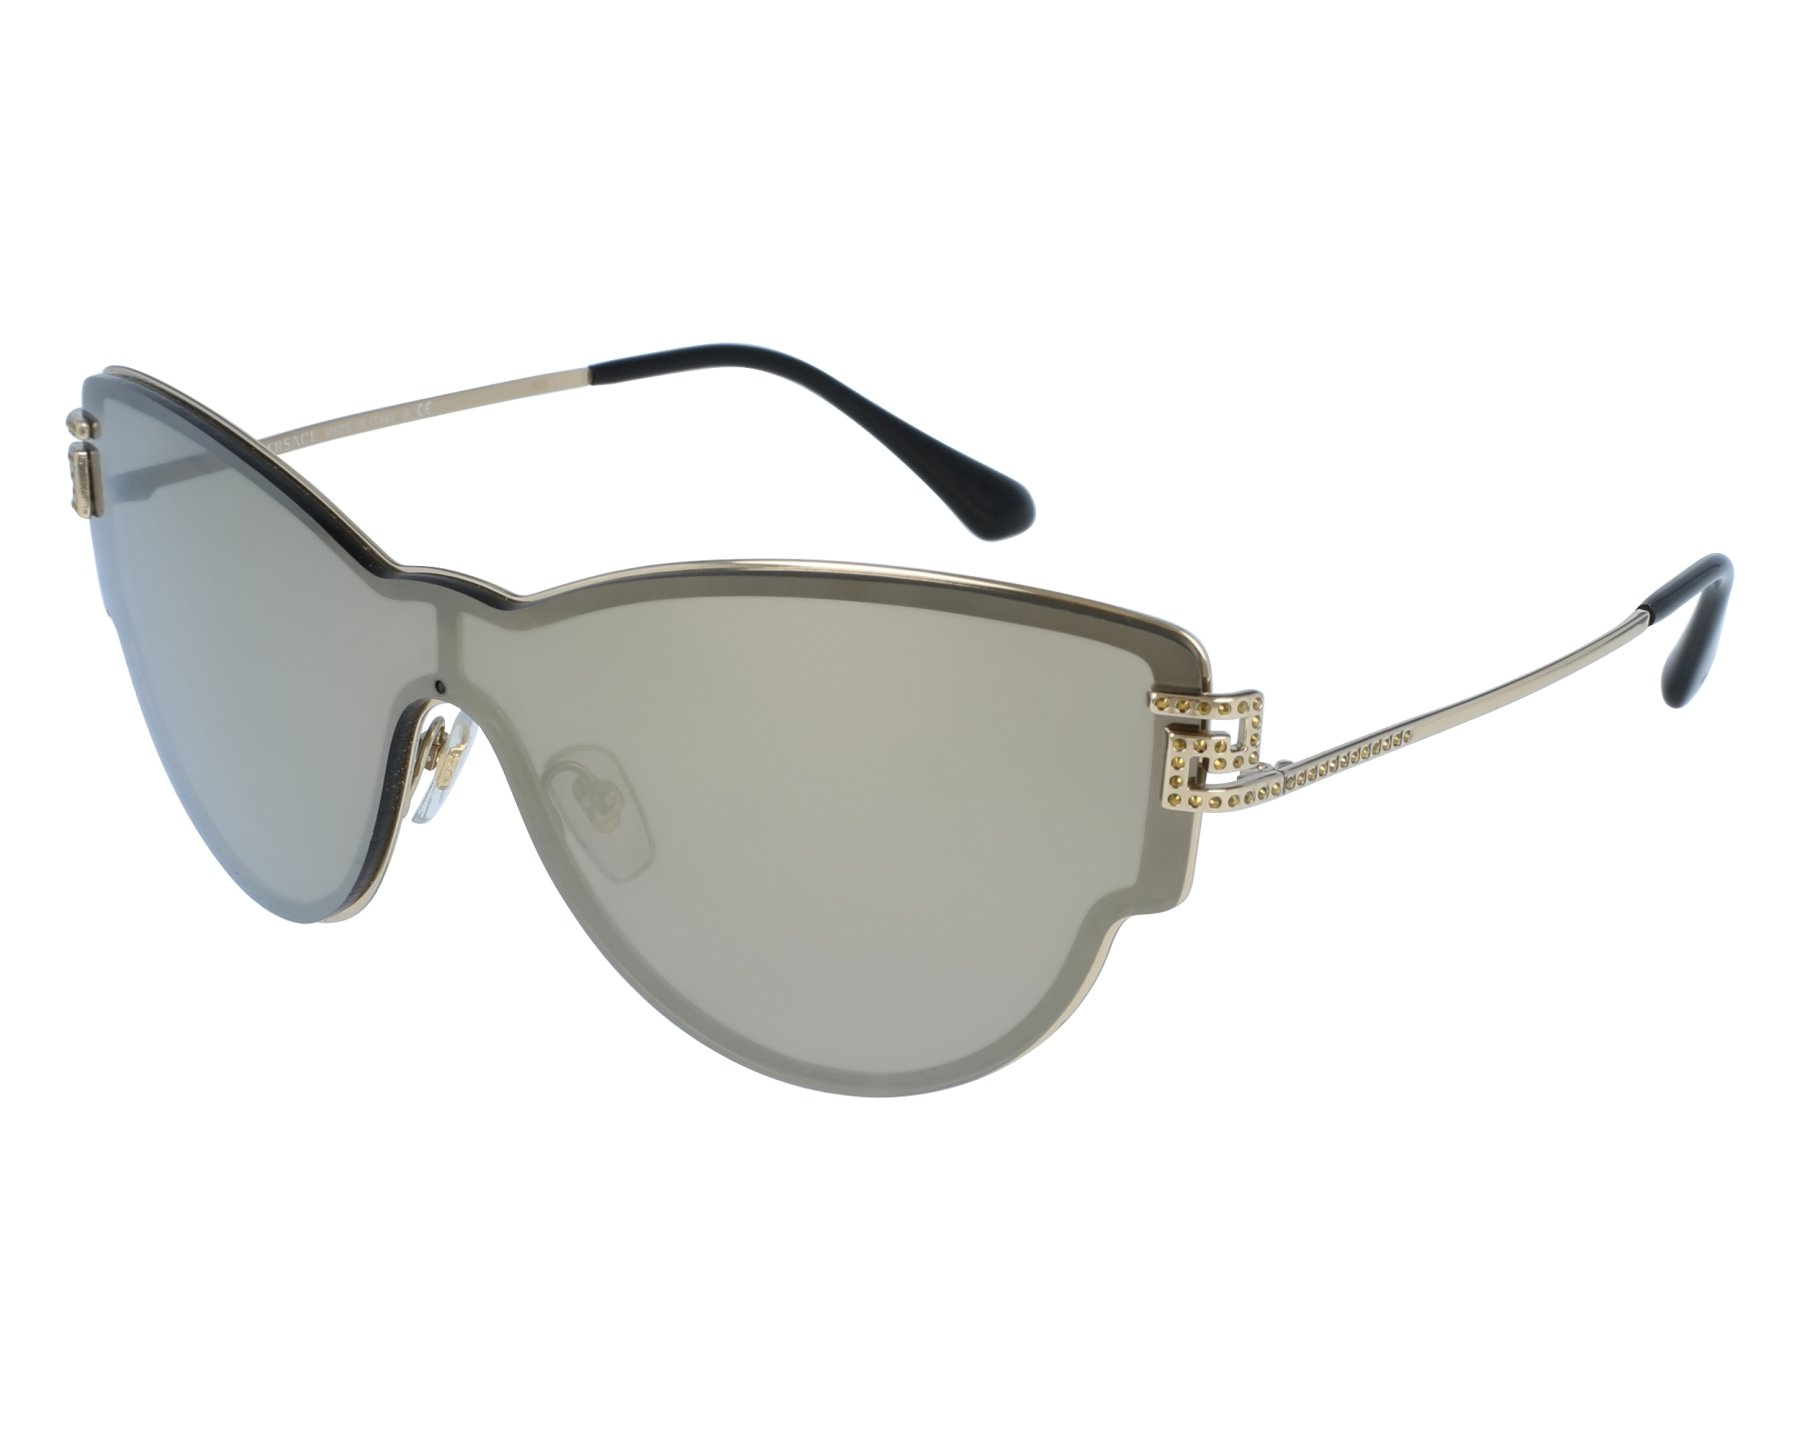 Sunglasses Versace VE-2172-B 1252/5A 99-11 Gold front view